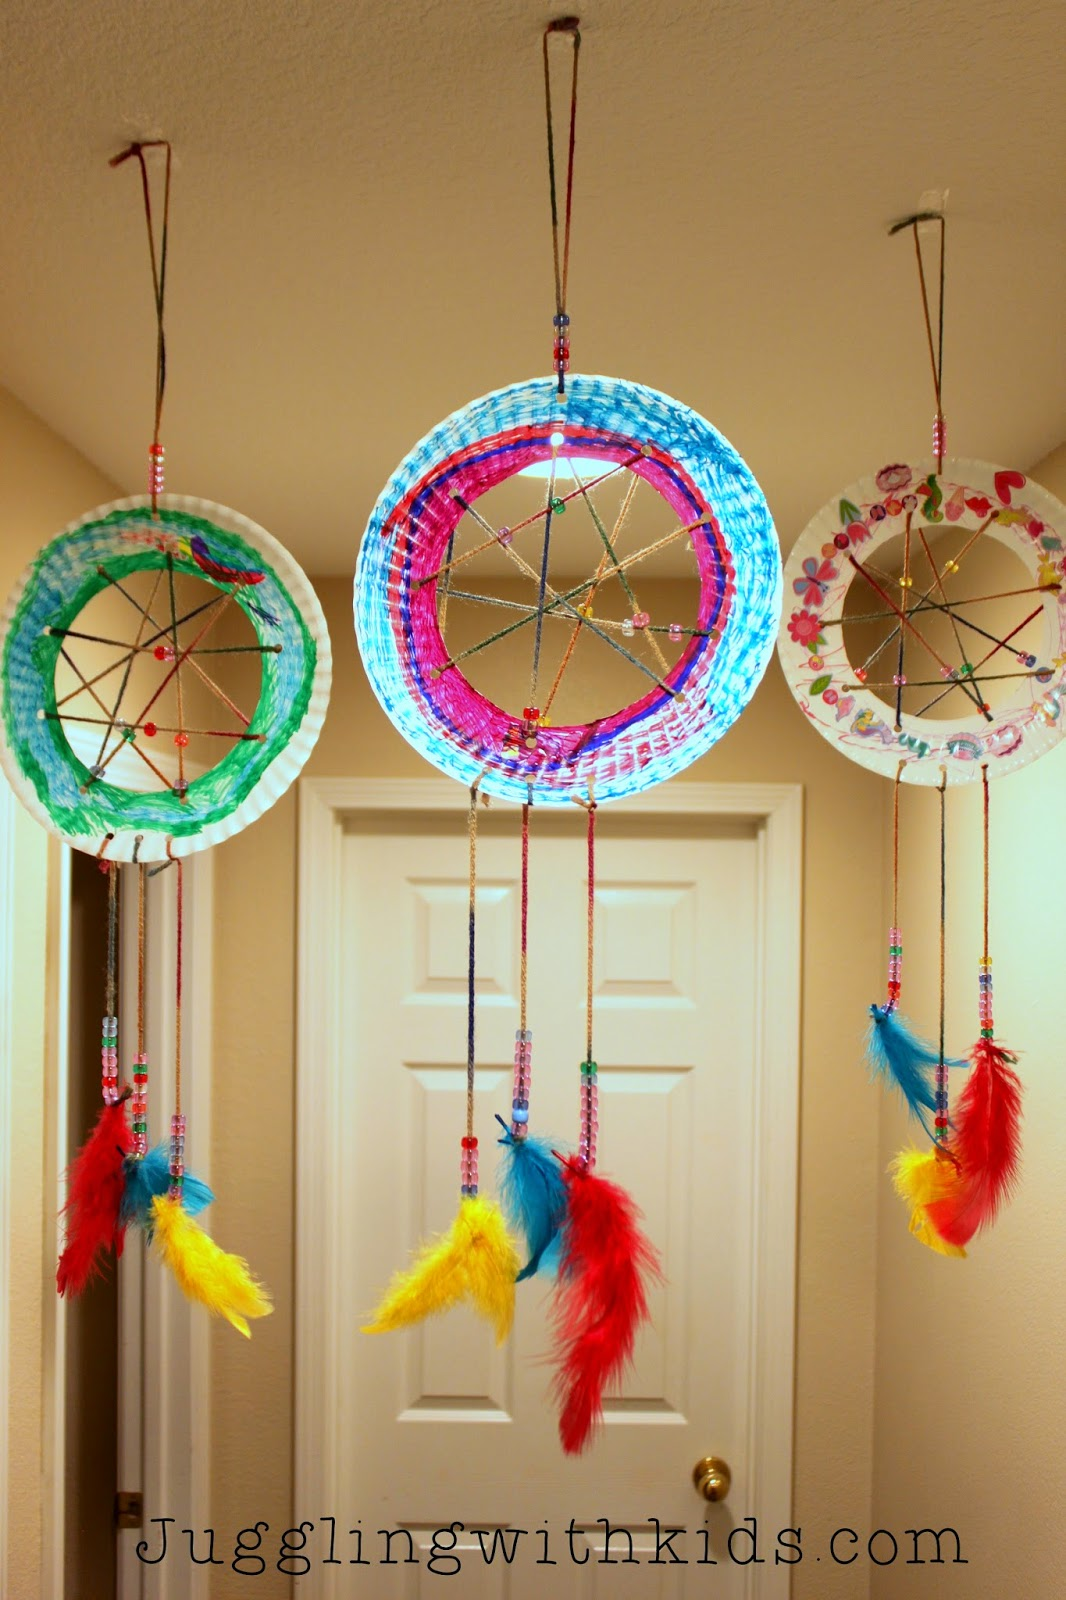 Juggling With Kids The Ultimate Guide To Feathers And Our Dream Catcher Craft